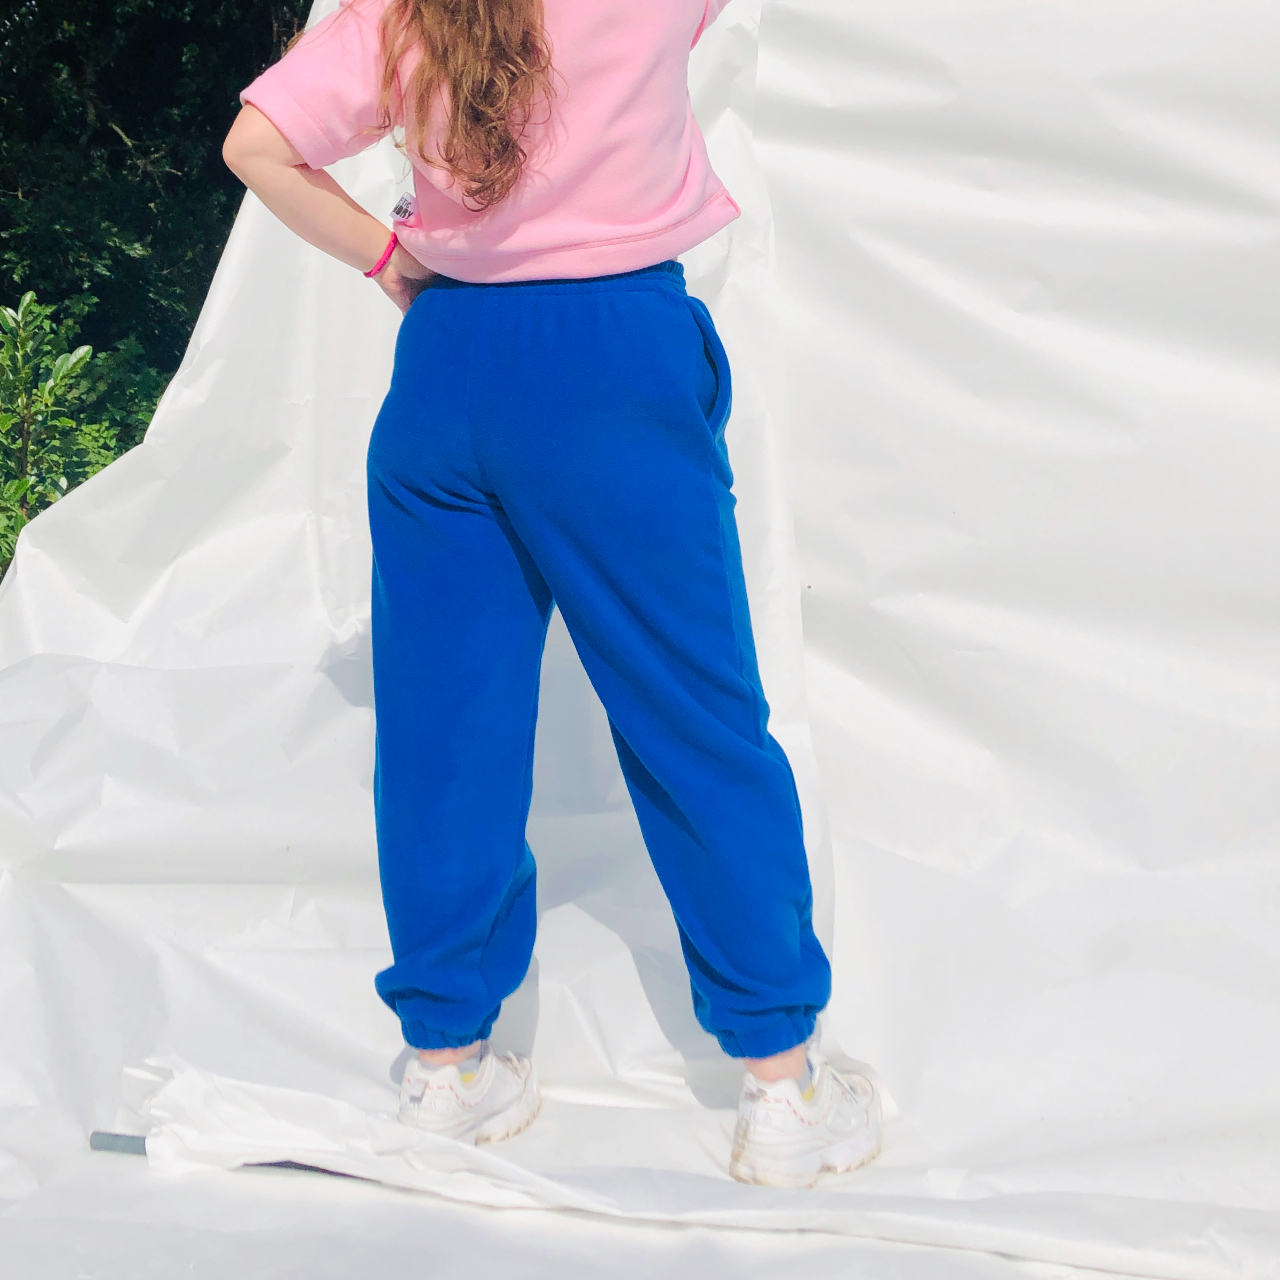 Product Image 1 - COBALT BLUE FLEECE JOGGERS from